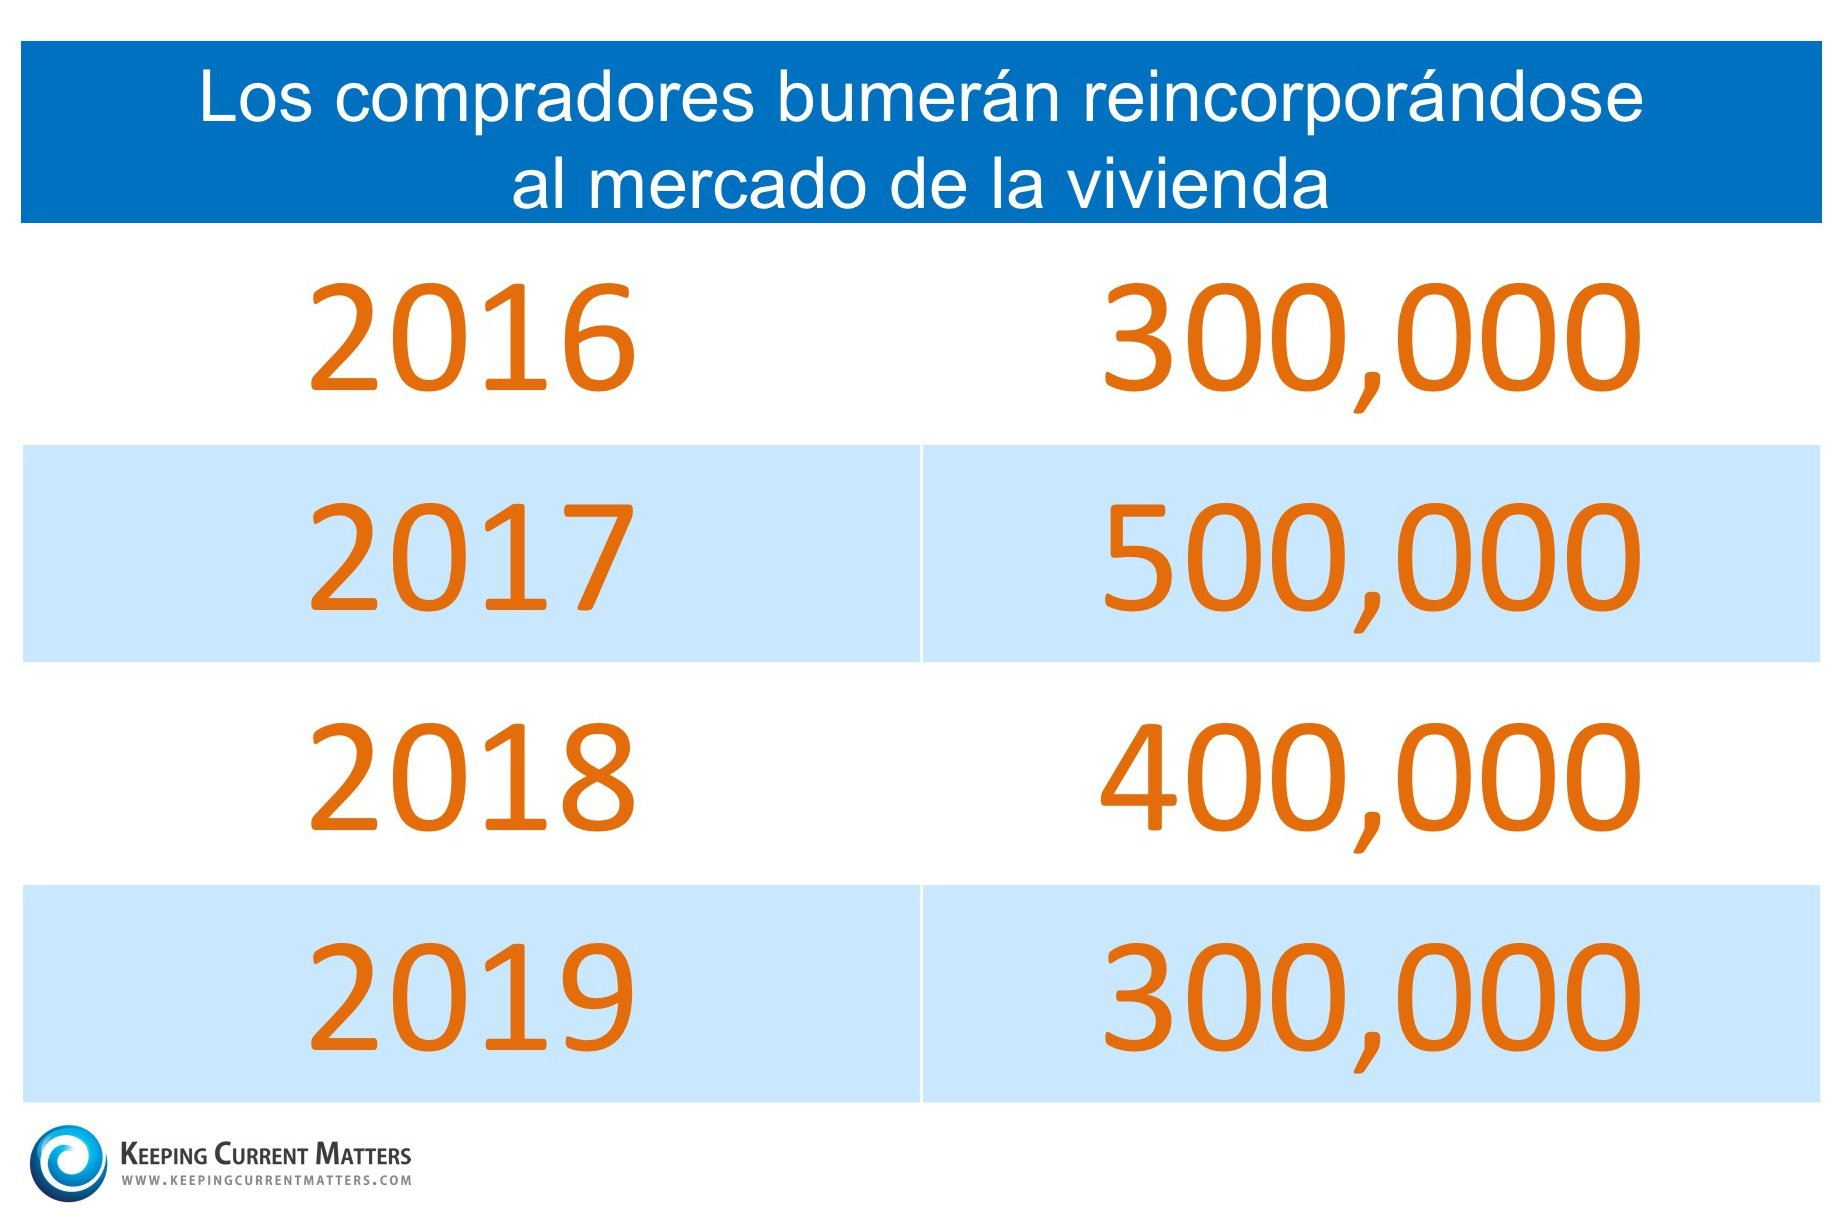 Los compradores bumeran | Keeping Current Matters